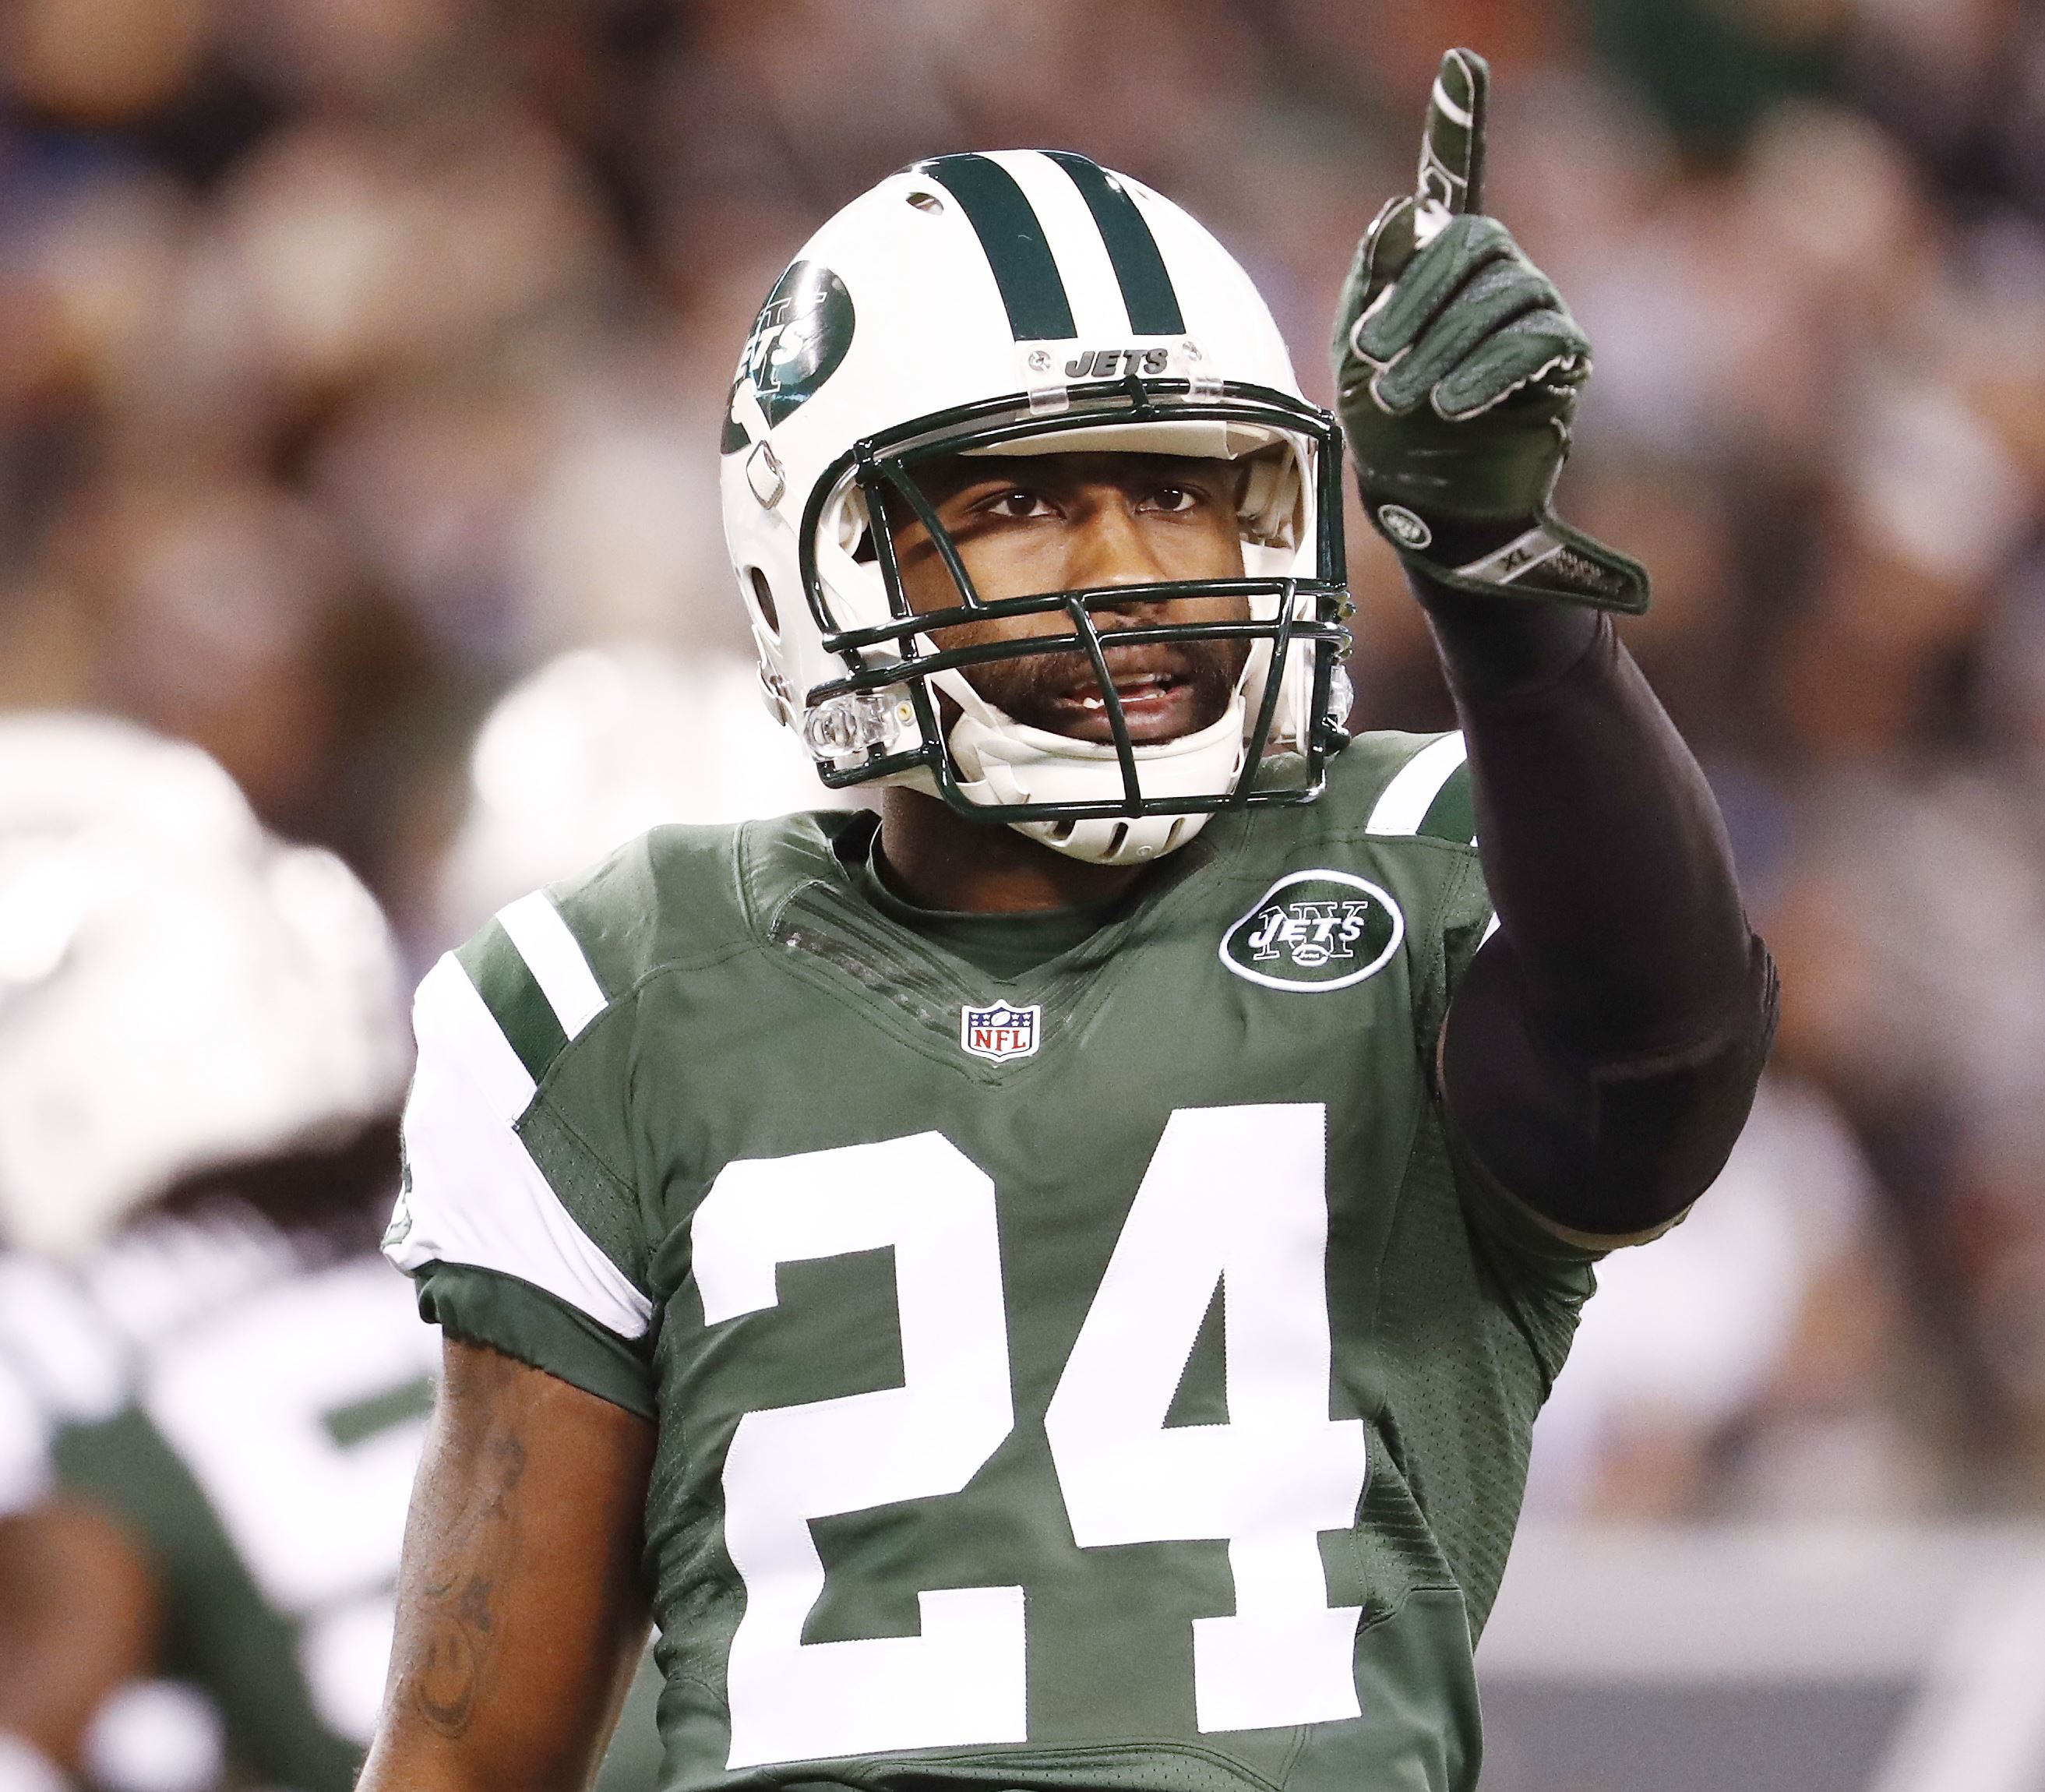 Charges against Darrelle Revis in Pittsburgh case dismissed